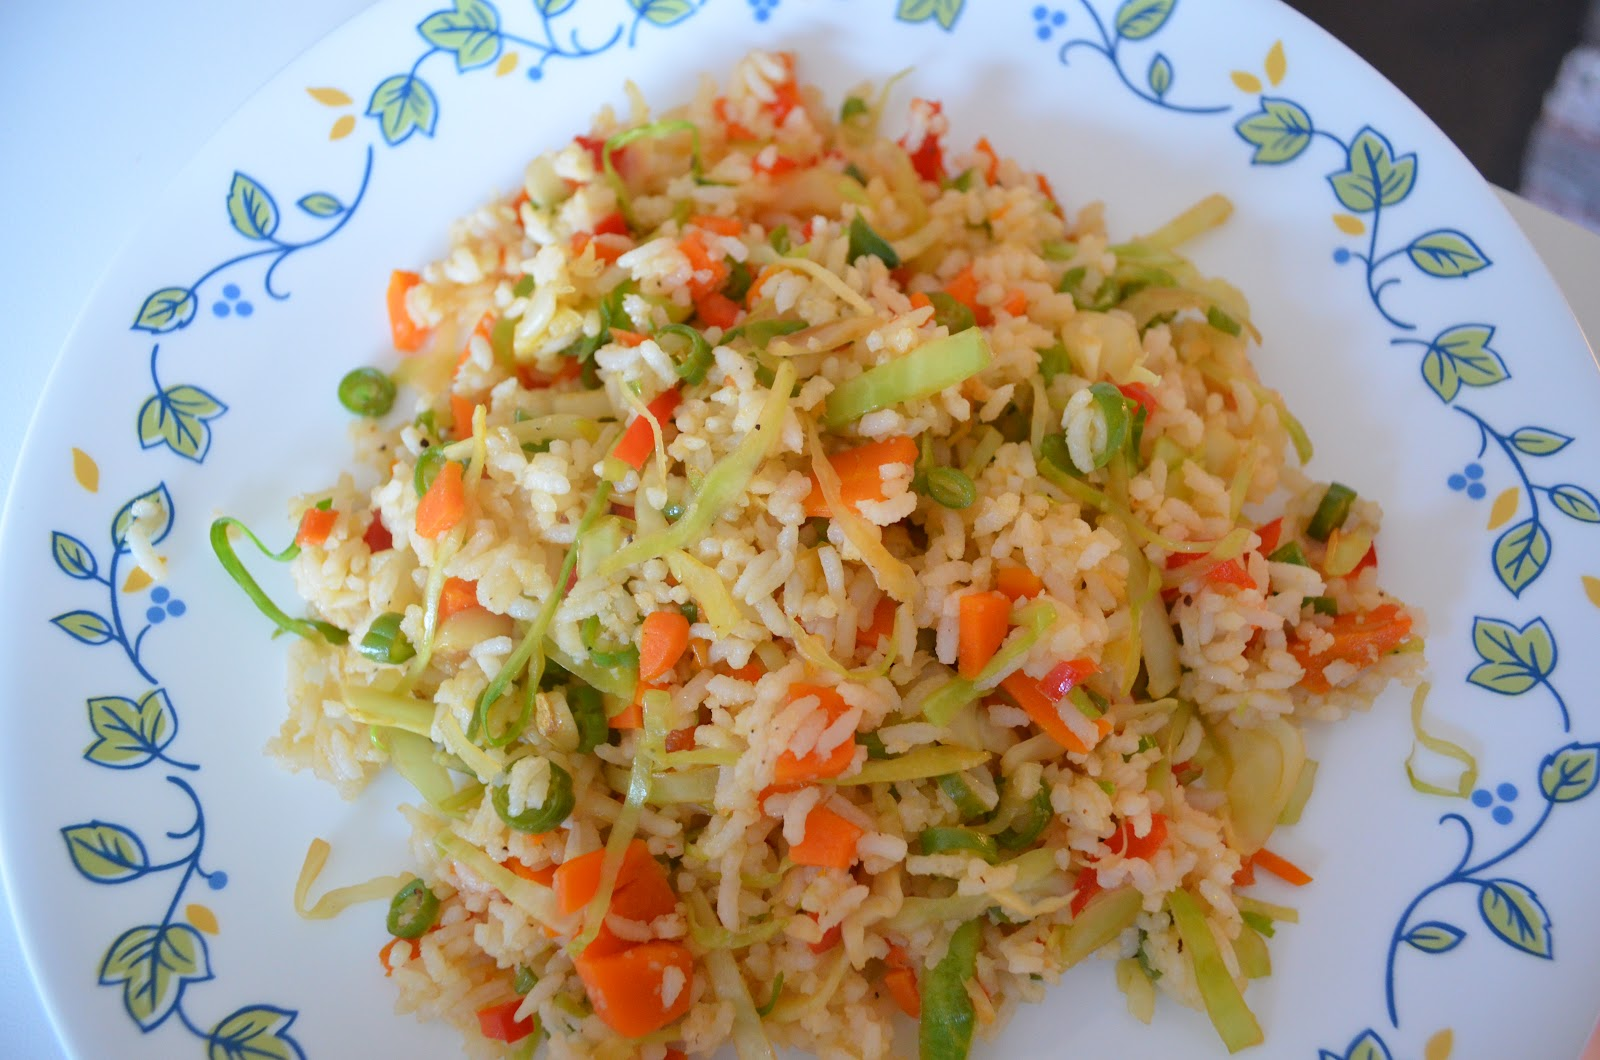 Vegetarian Recipes: Indo-Chinese Vegetable Fried Rice